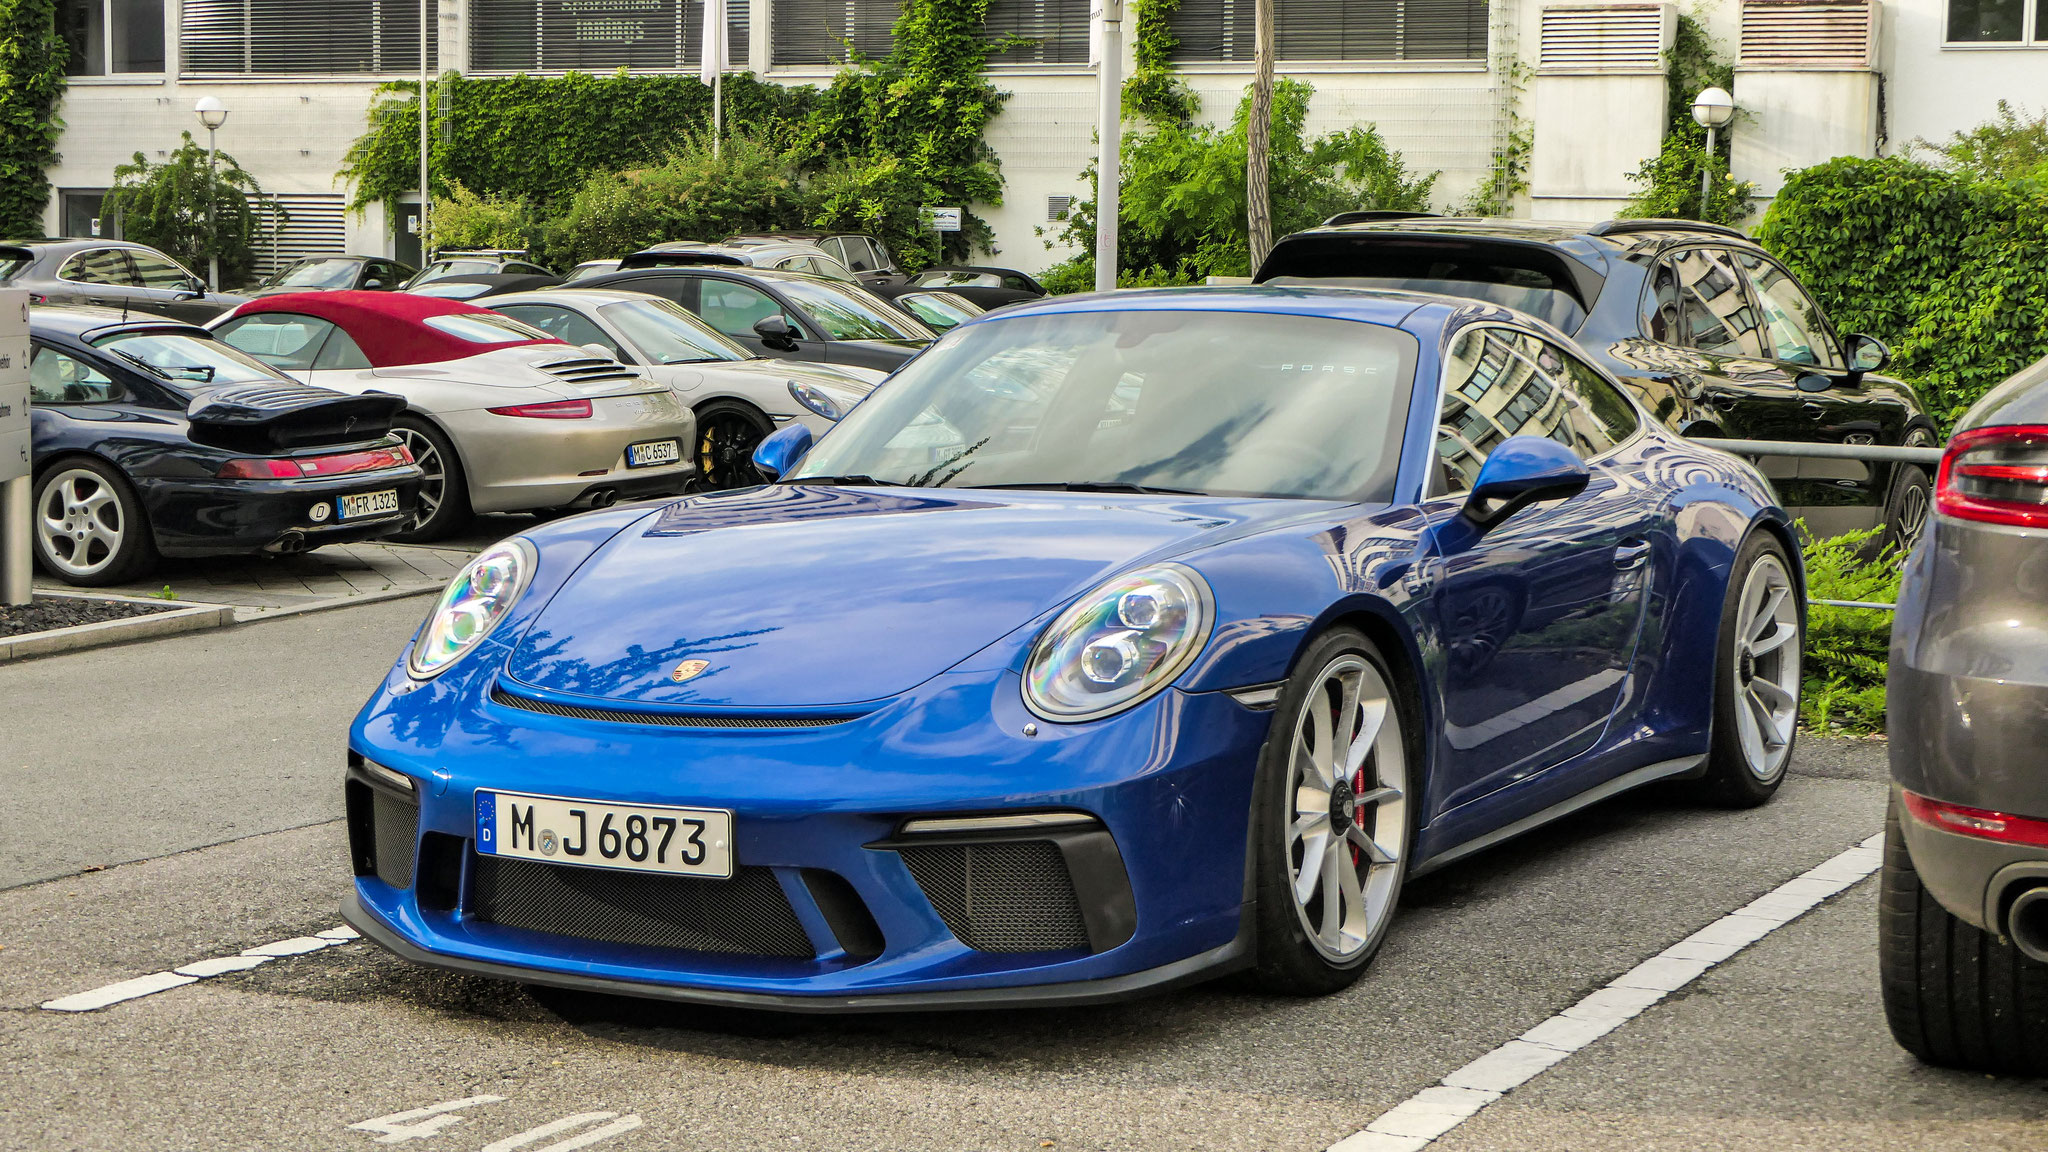 Porsche 991 GT3 Touring Package - M-J-6873